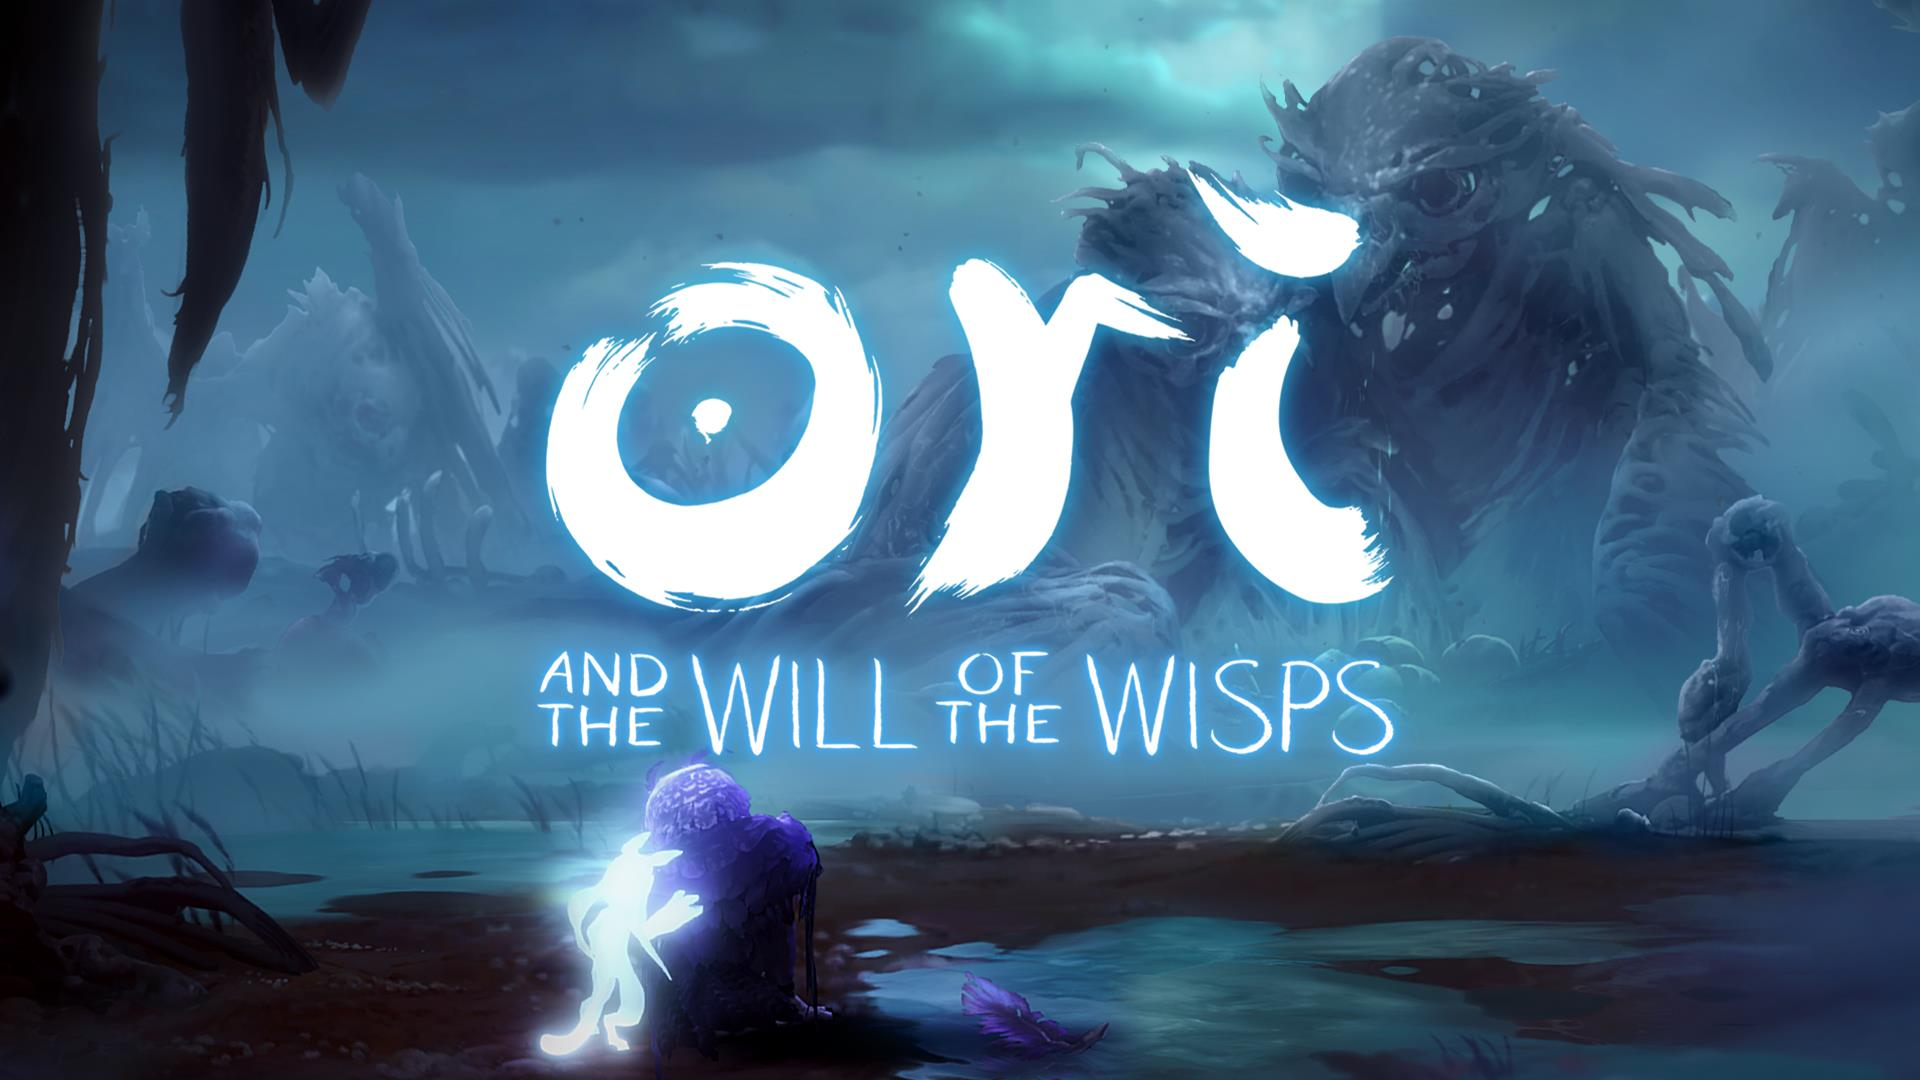 ori and the will of the wisps video game wallpaper 62049